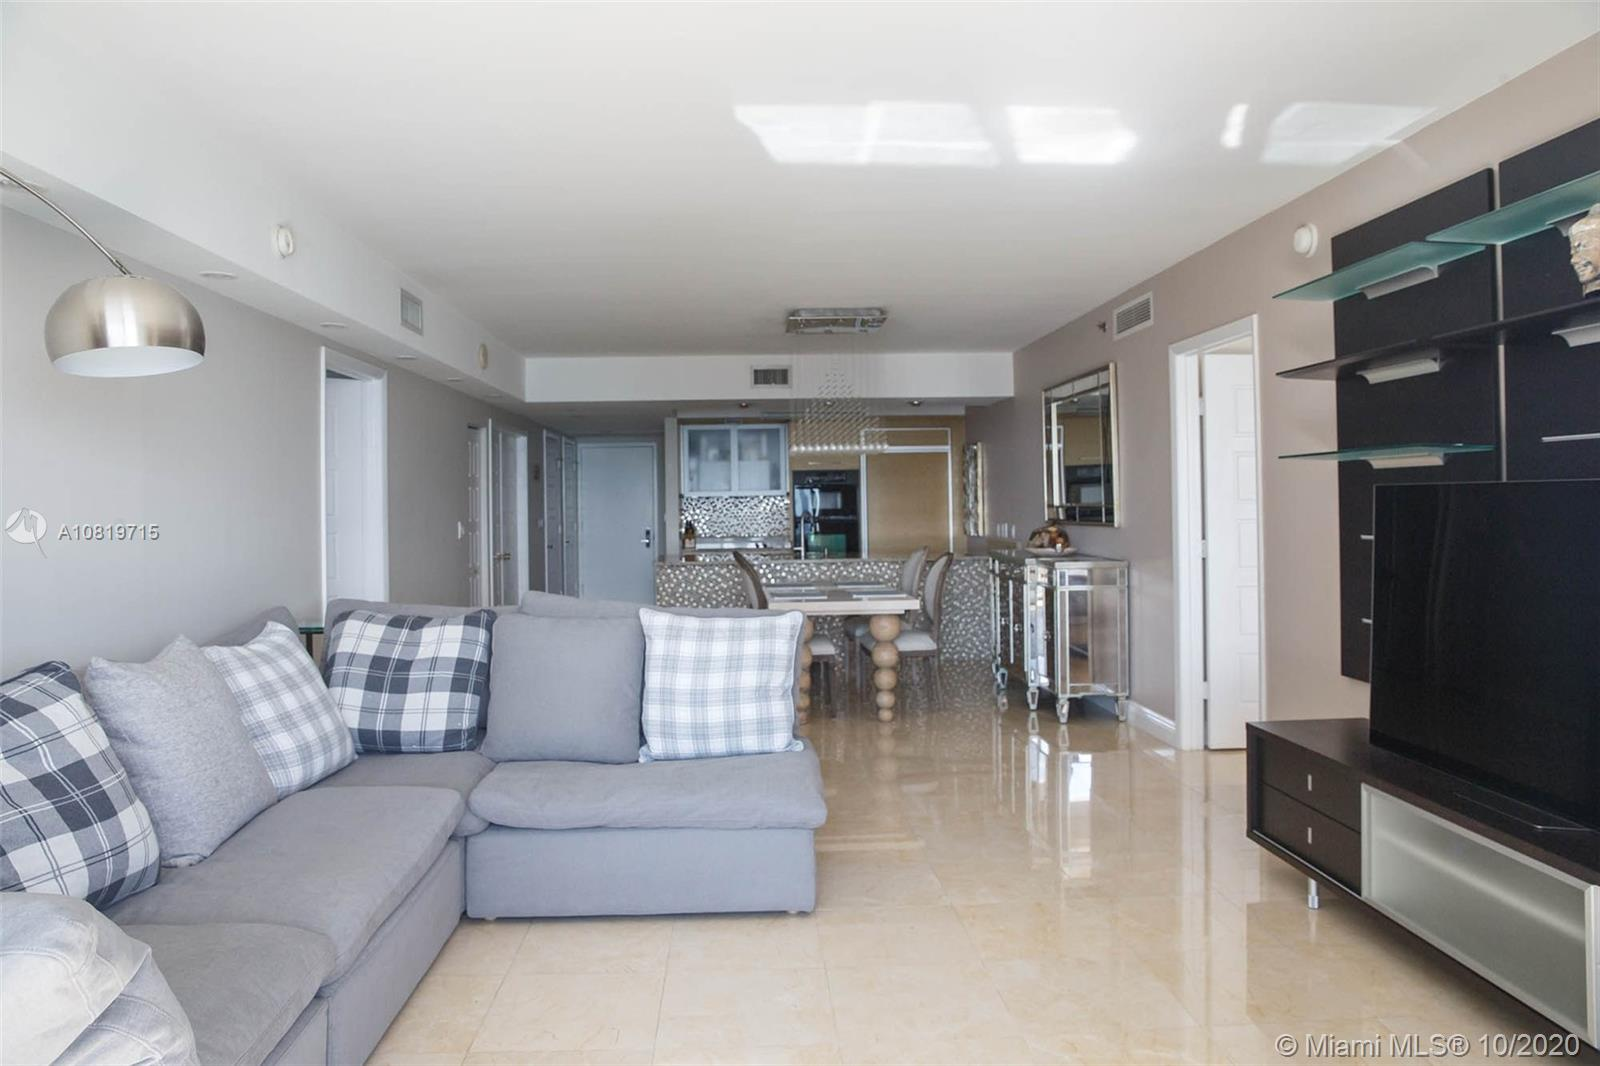 3003 3 / 3 1733 sq. ft. $ 2020-10-19 0 Photo